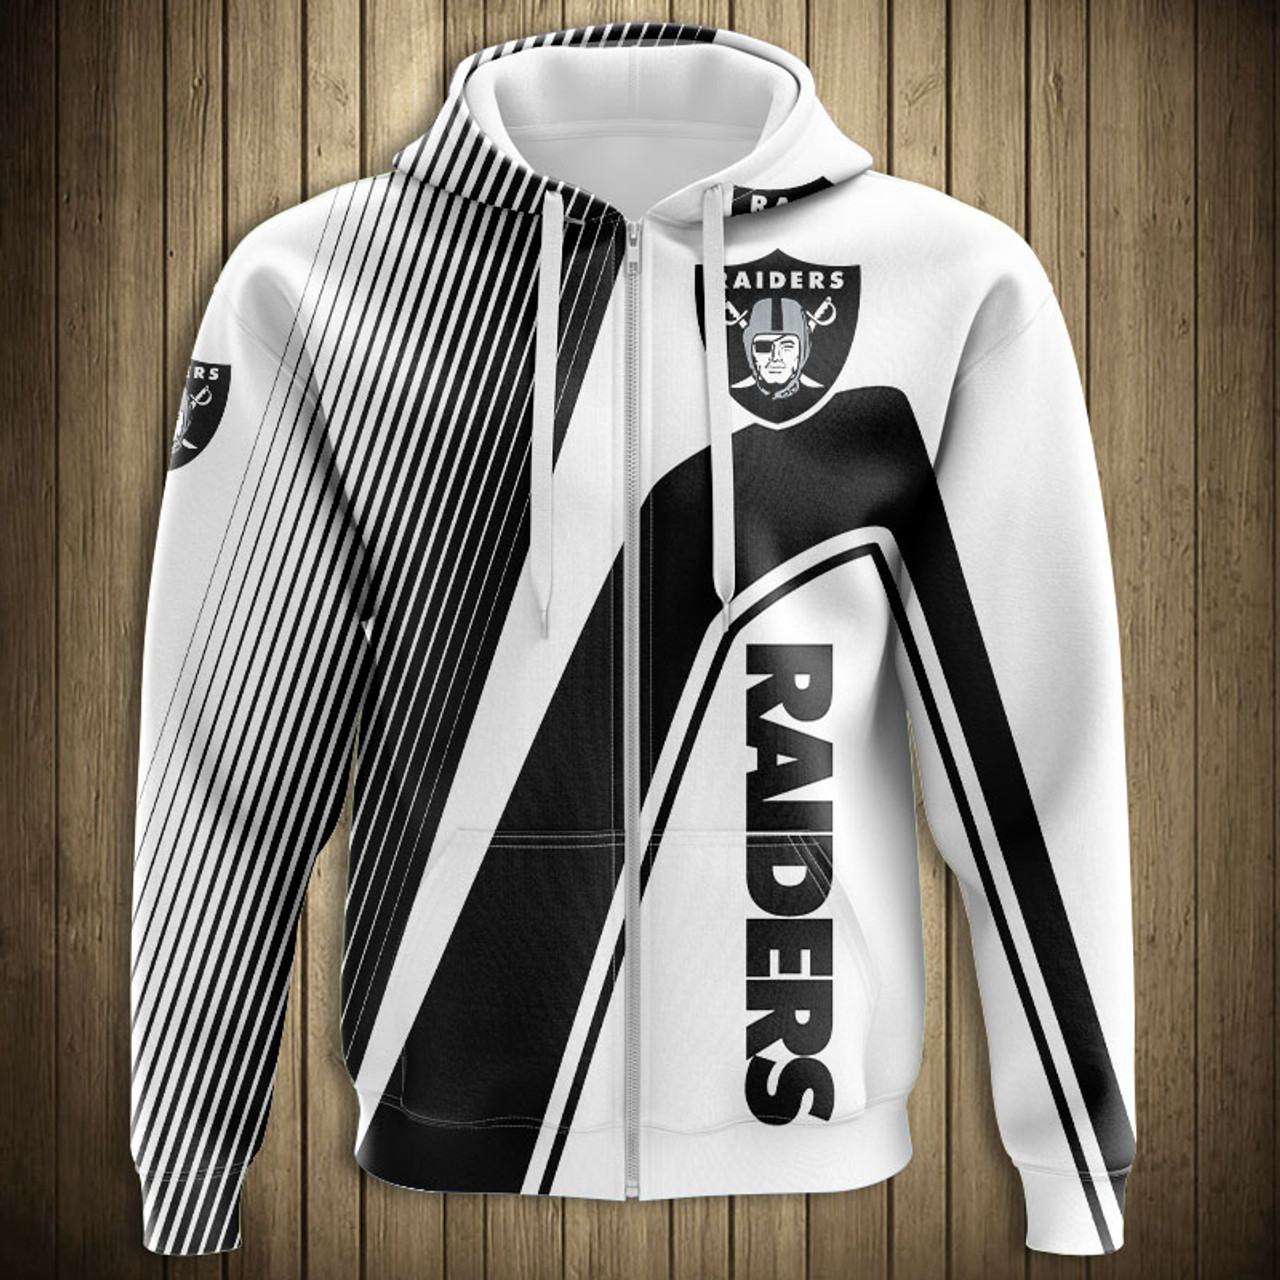 save off ffc2b 6ab79 **(OFFICIAL-N.F.L.OAKLAND-RAIDERS-ZIPPERED-HOODIES/3D-CUSTOM-RAIDERS-LOGOS  &  OFFICIAL-RAIDERS-TEAM-COLORS/NICE-3D-DETAILED-GRAPHIC-PRINTED-DOUBLE-SIDE...